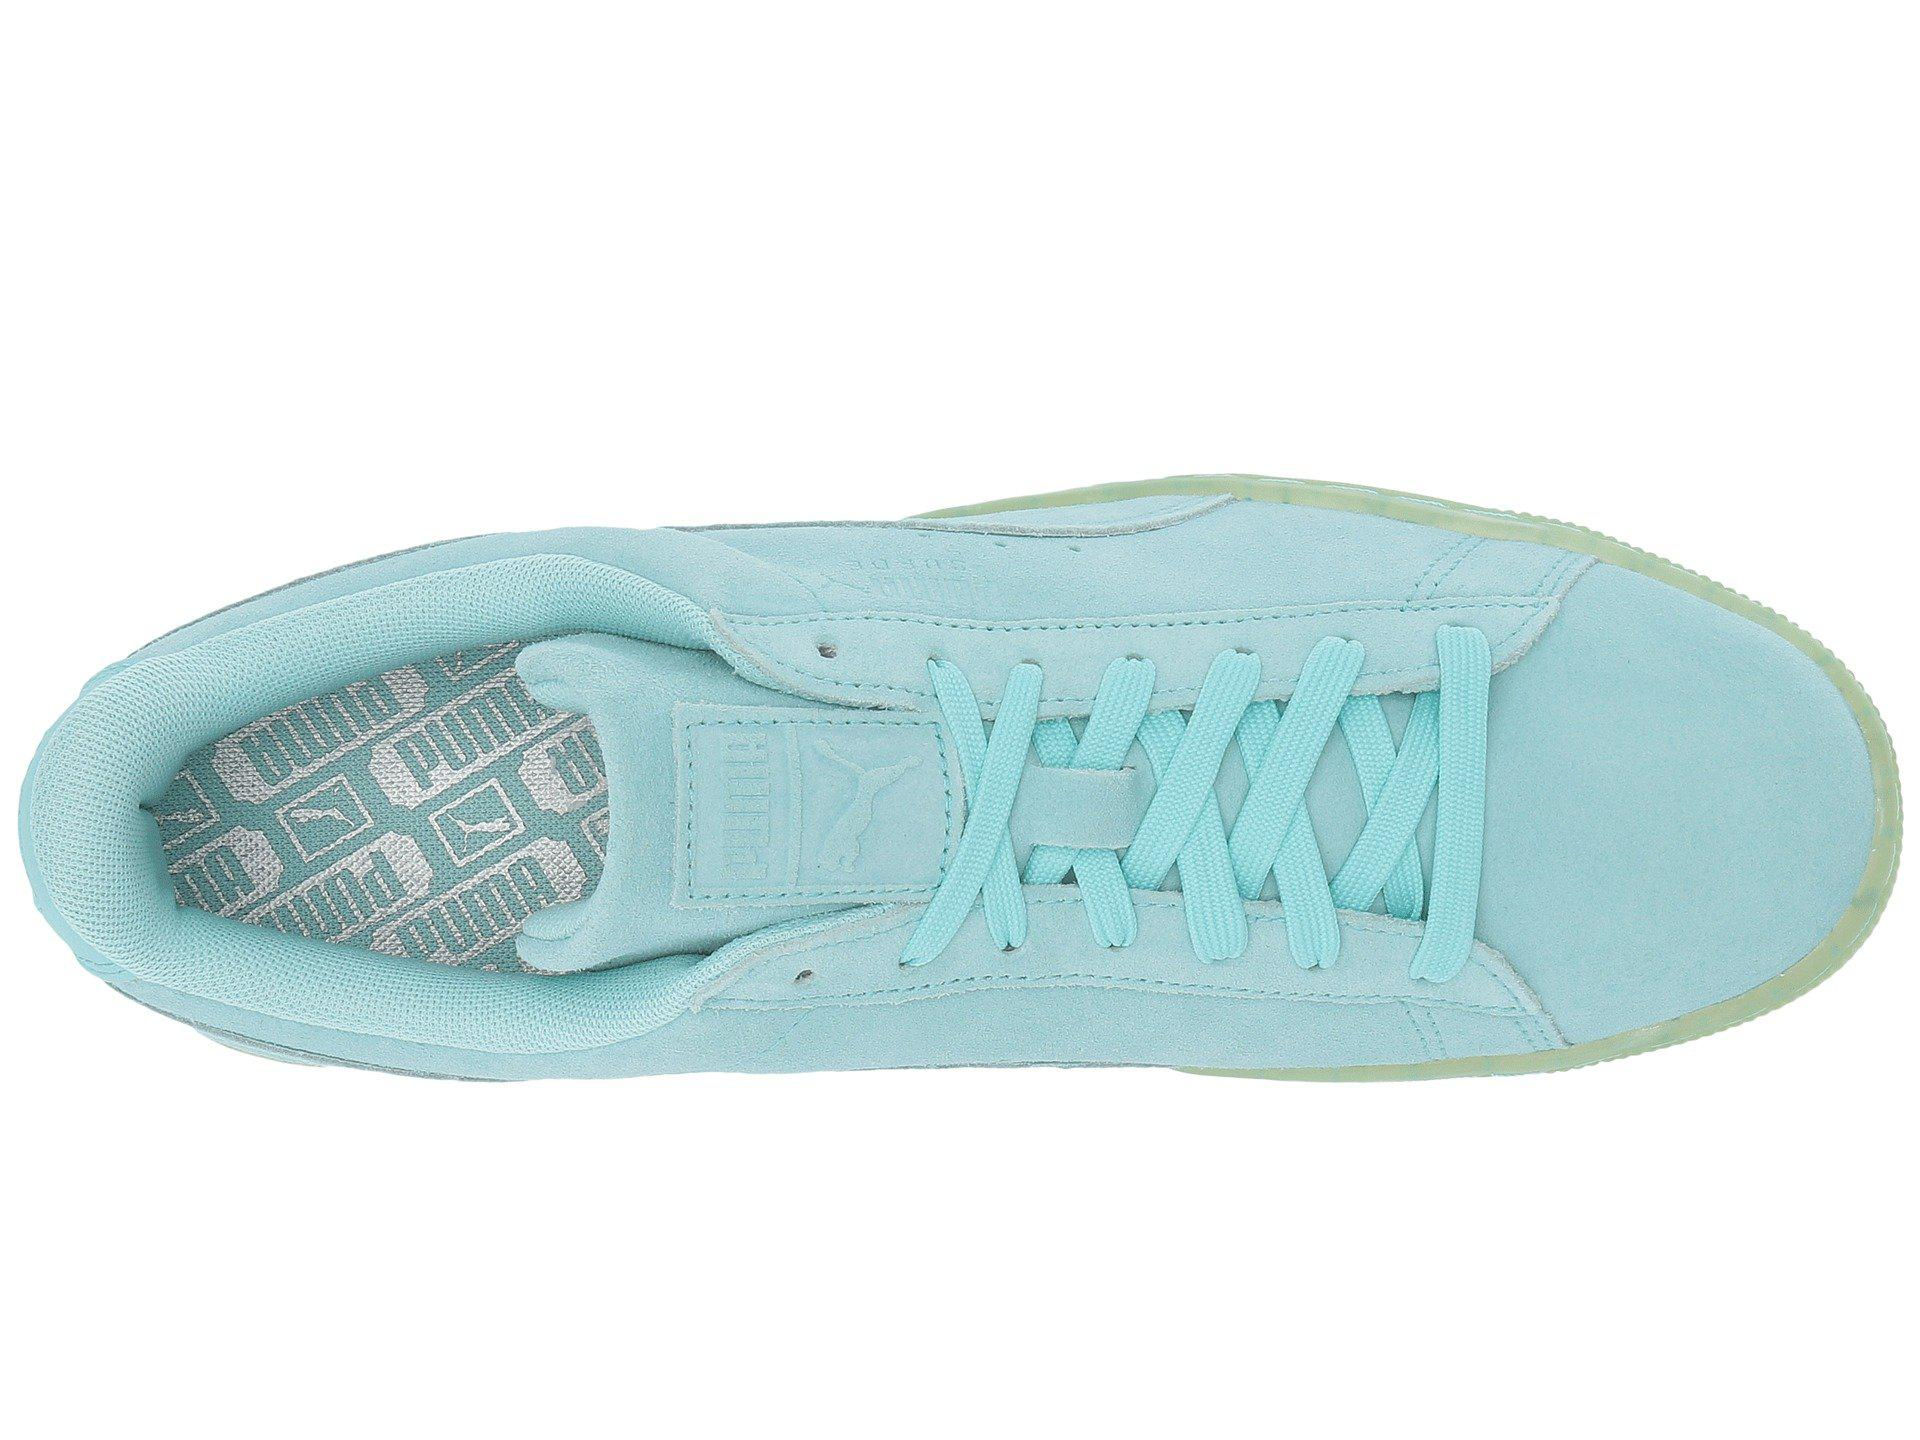 online store d9388 3bf05 PUMA Suede Classic Easter Fm in Blue for Men - Lyst